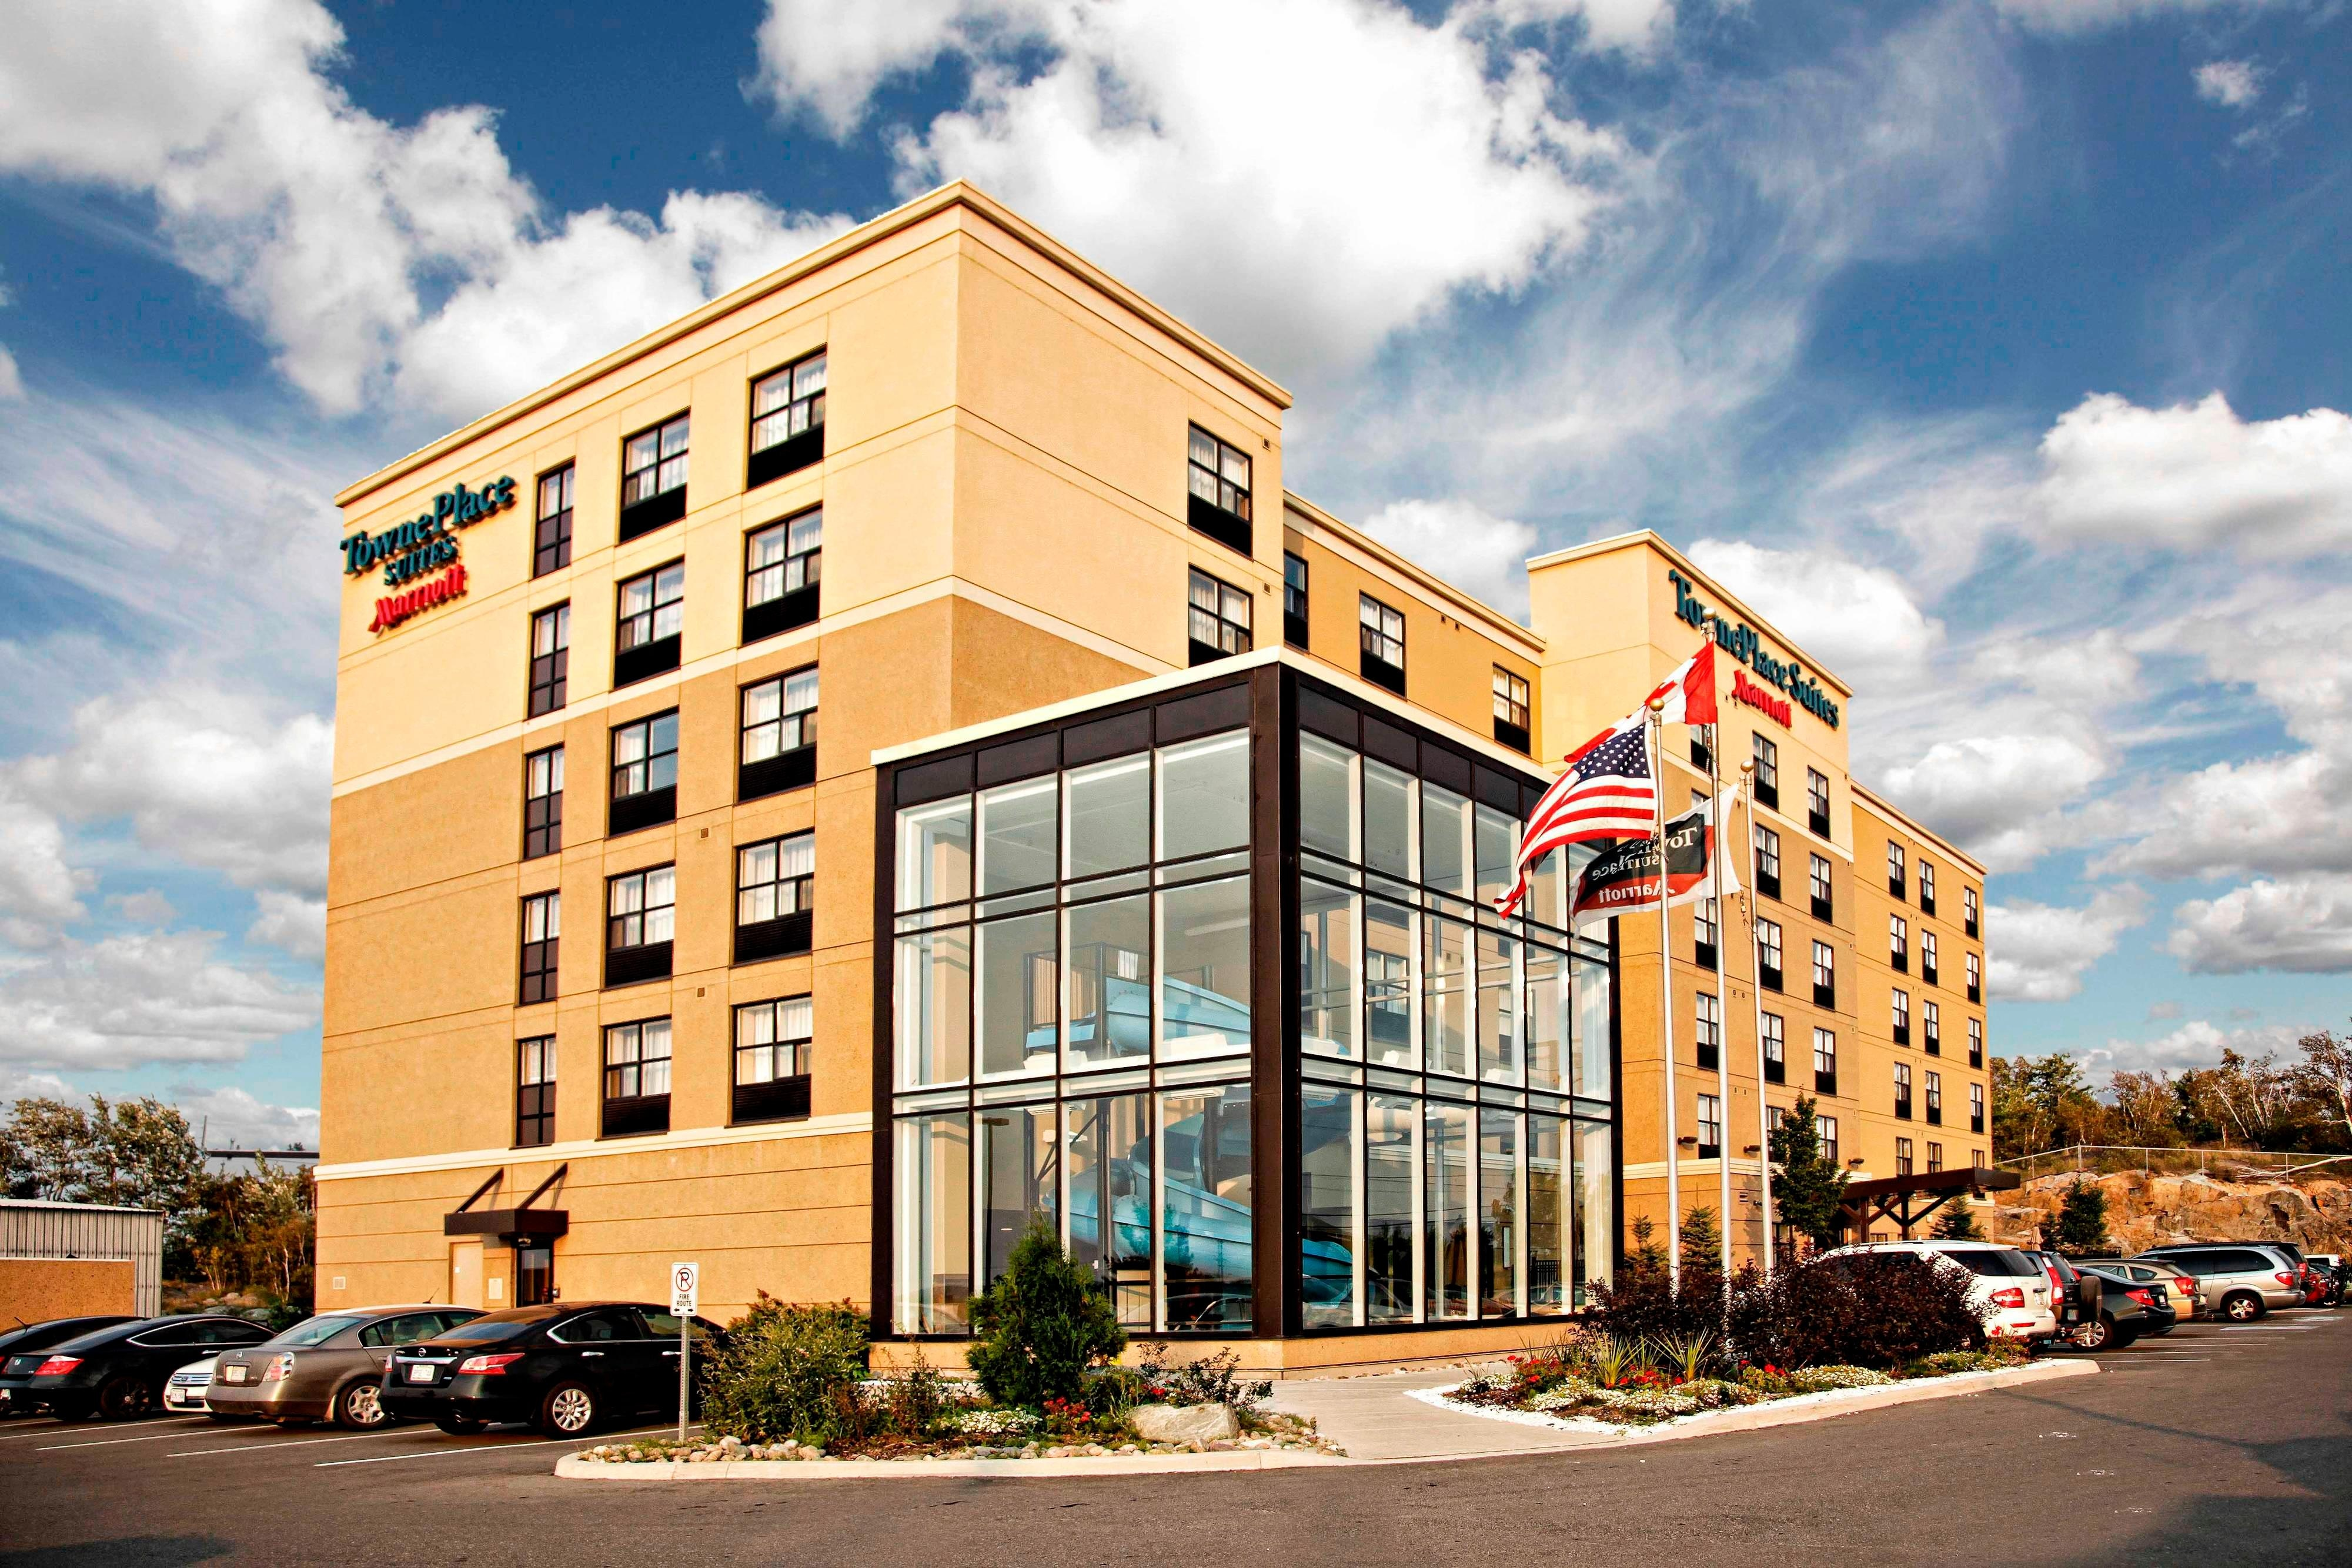 TownePlace Suites Exterior